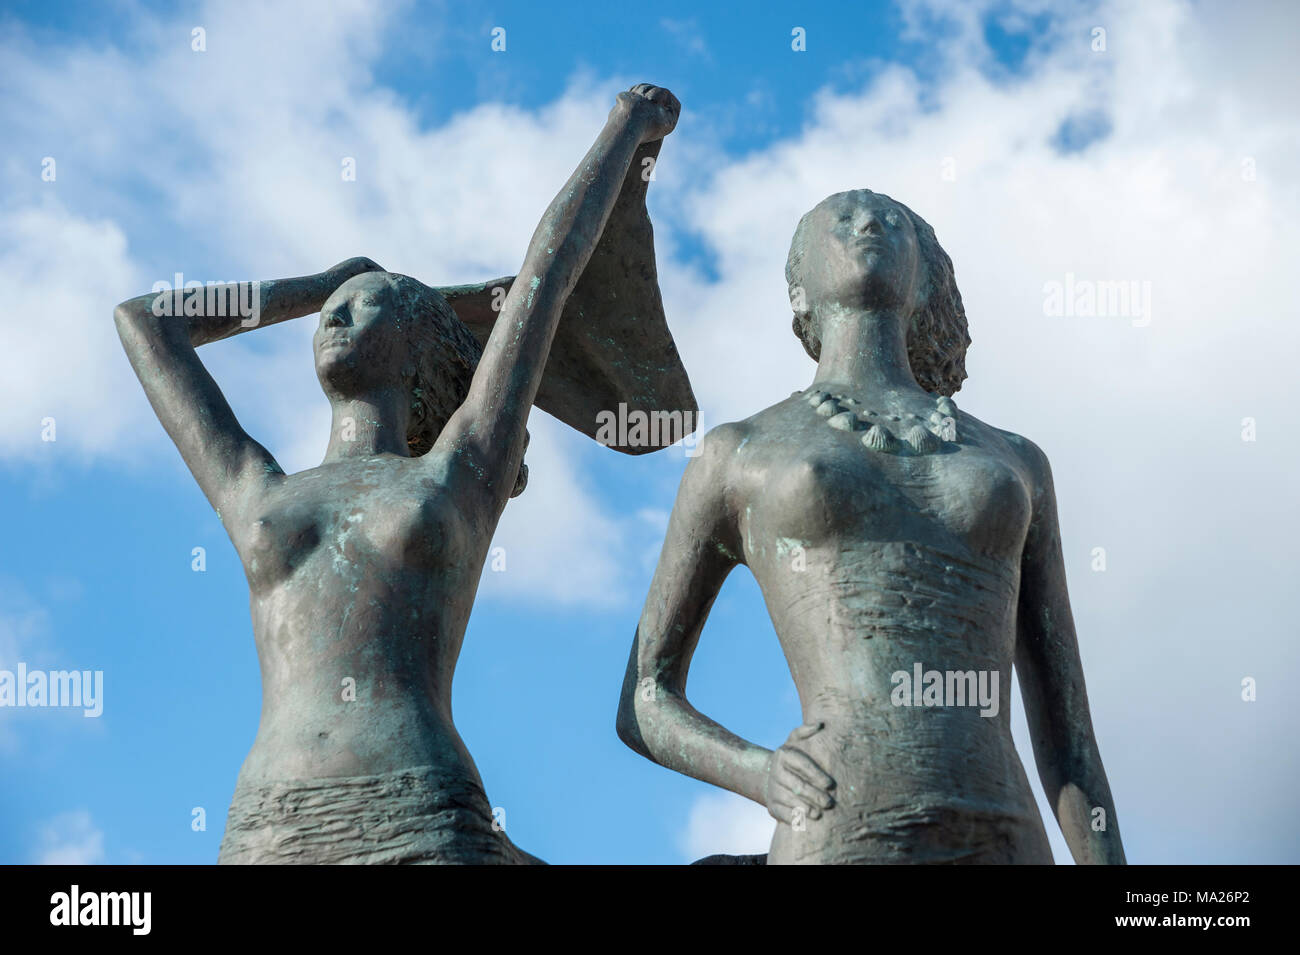 Bronze sculpture, Girl on the south beach, Burgtiefe, Fehmarn, Baltic Sea, Schleswig-Holstein, Germany, Europe - Stock Image